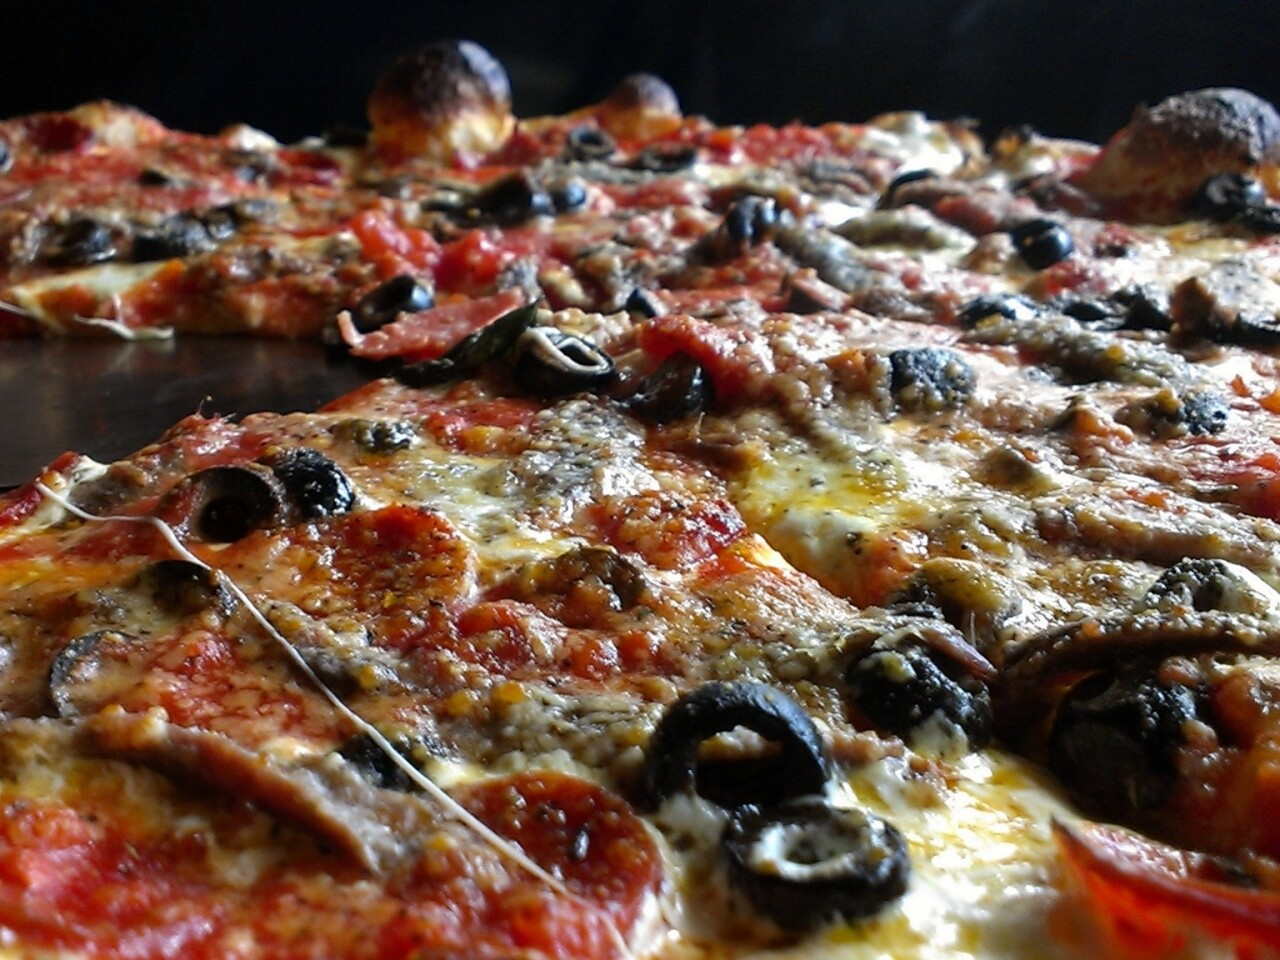 Grimaldi's in El Segundo serves New York-style pizzas from its coal-burning oven.